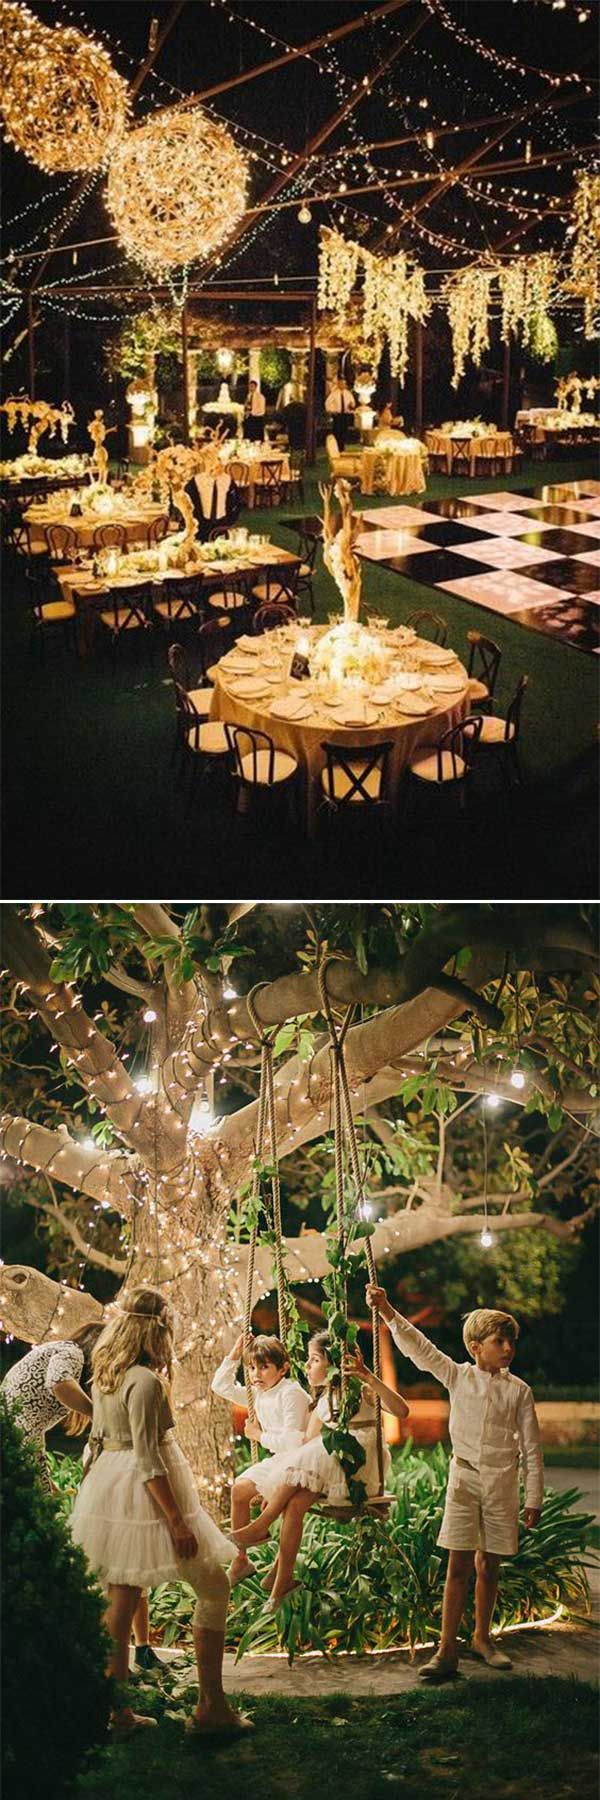 Wedding decorations for hall january 2019  best Wedding Ideas images on Pinterest  Wedding decor Weddings